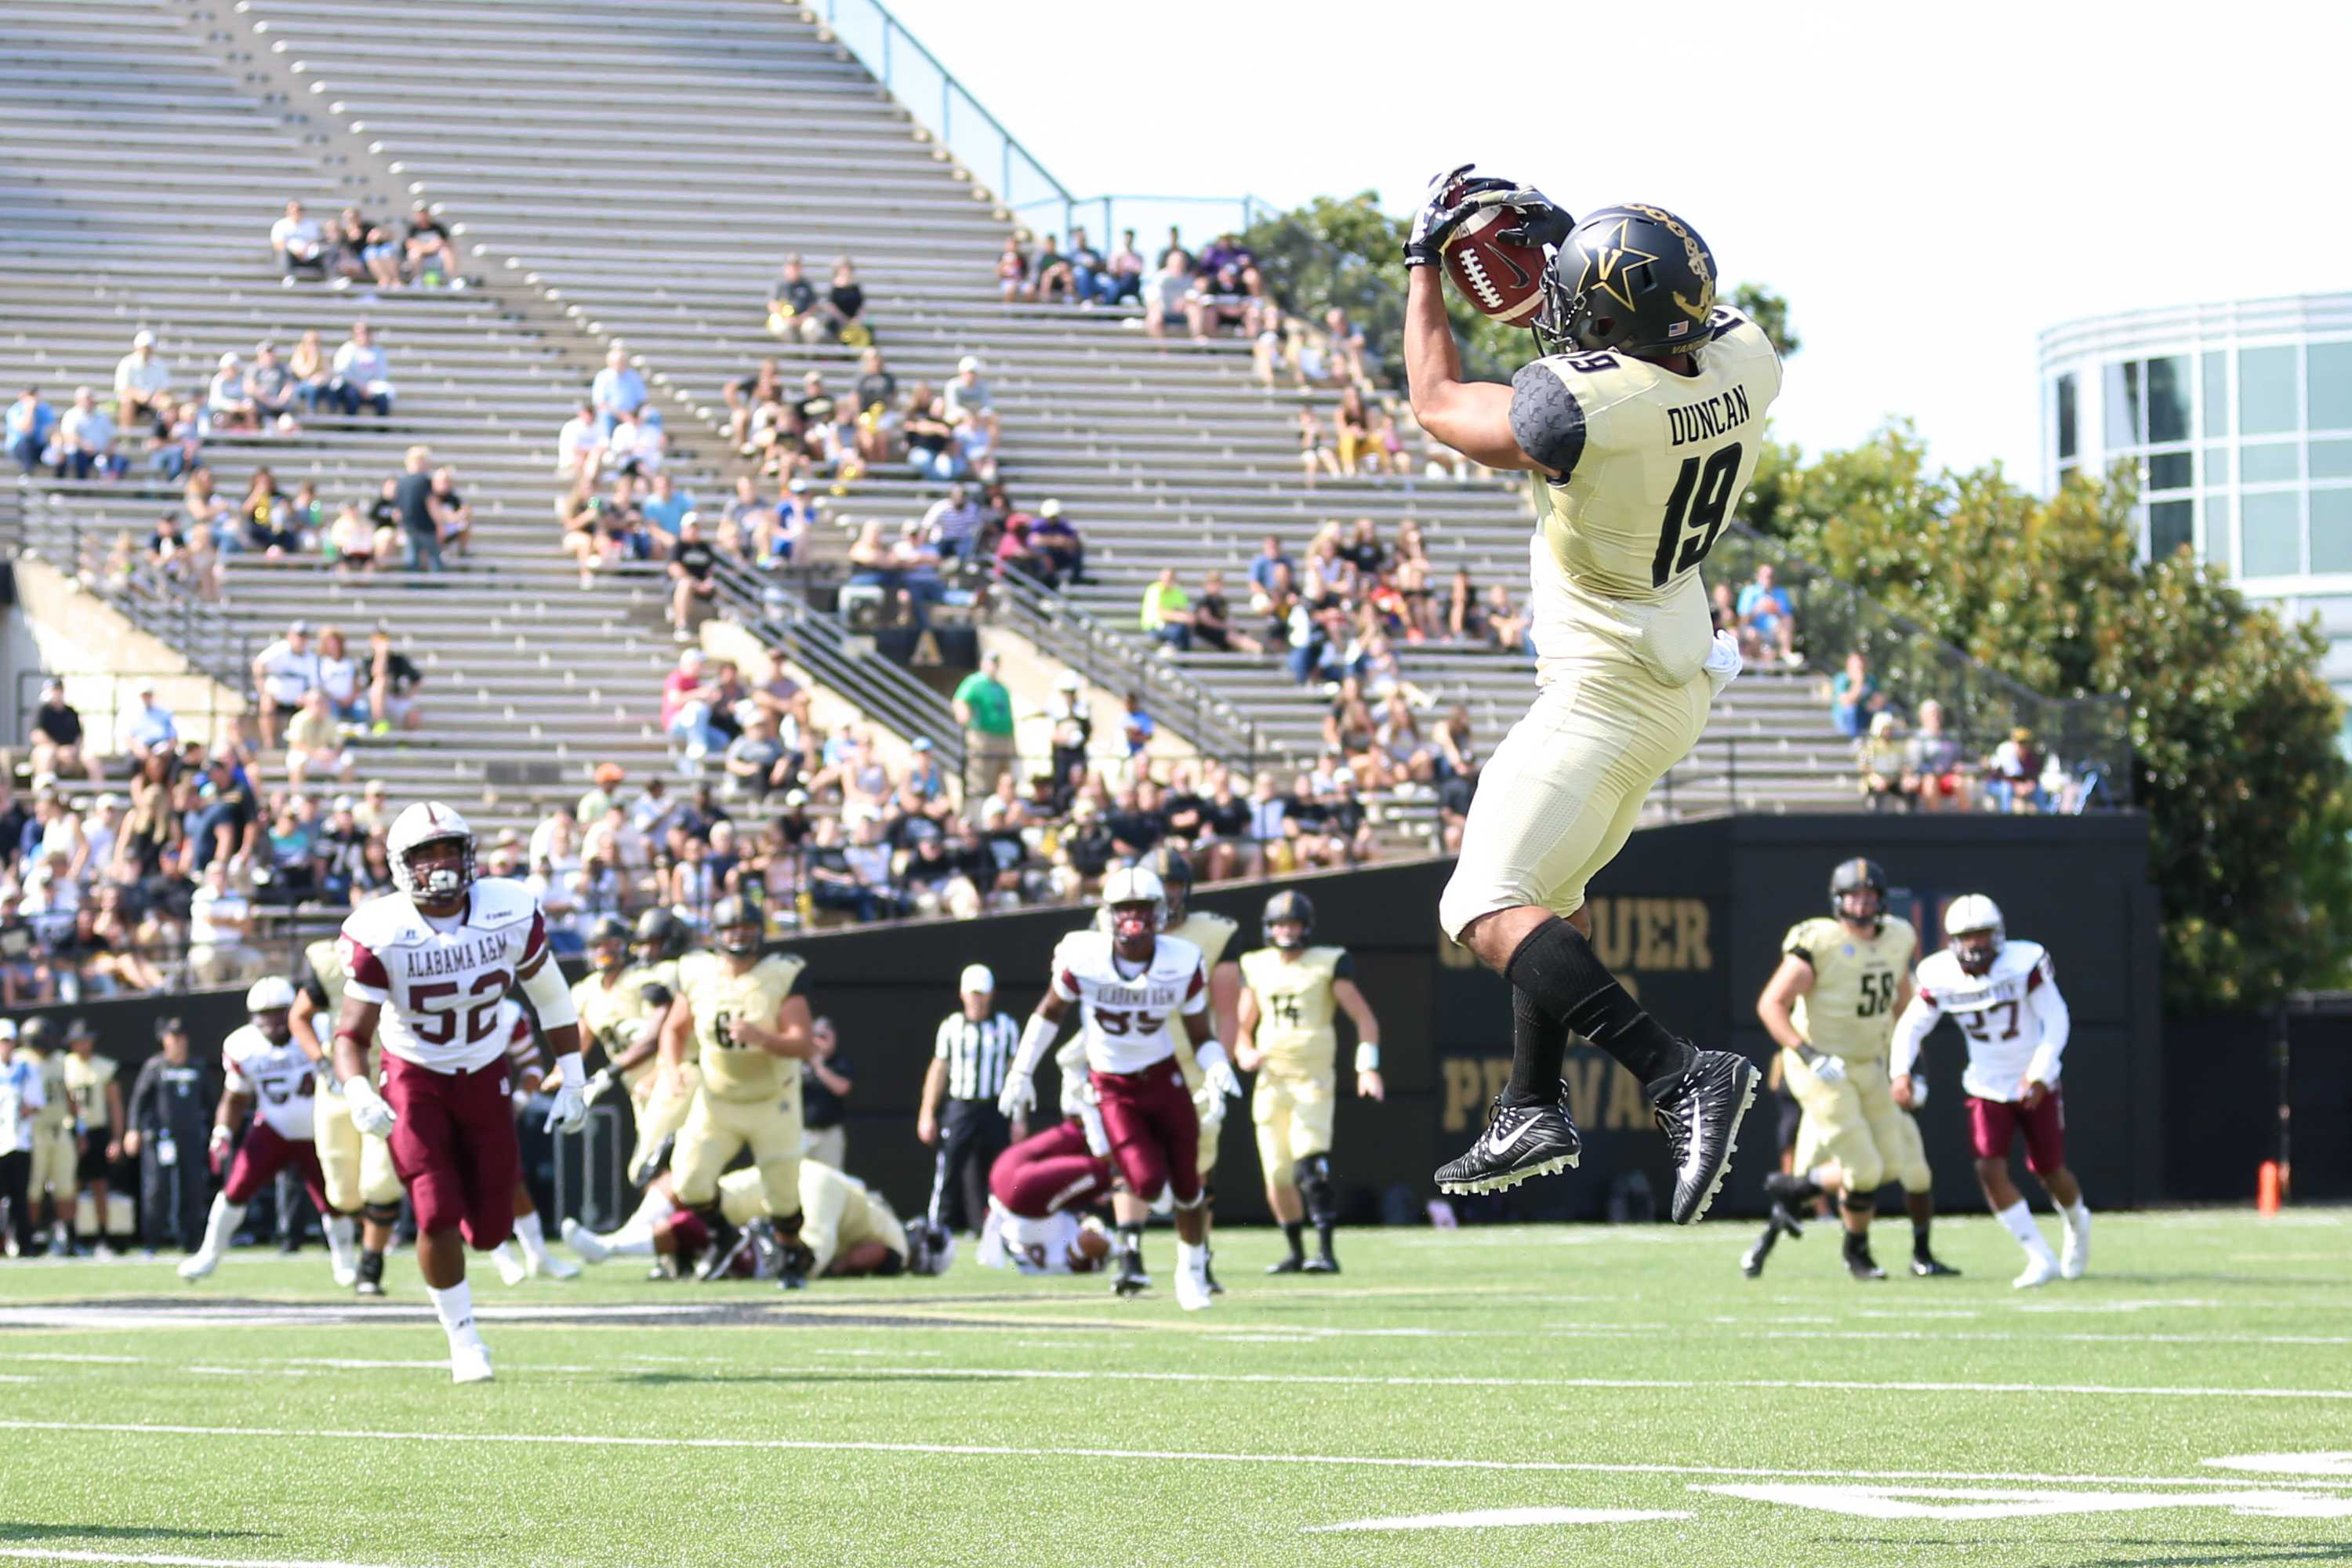 Commodore Brunch: Vanderbilt drubs Alabama A&M going into tough stretch